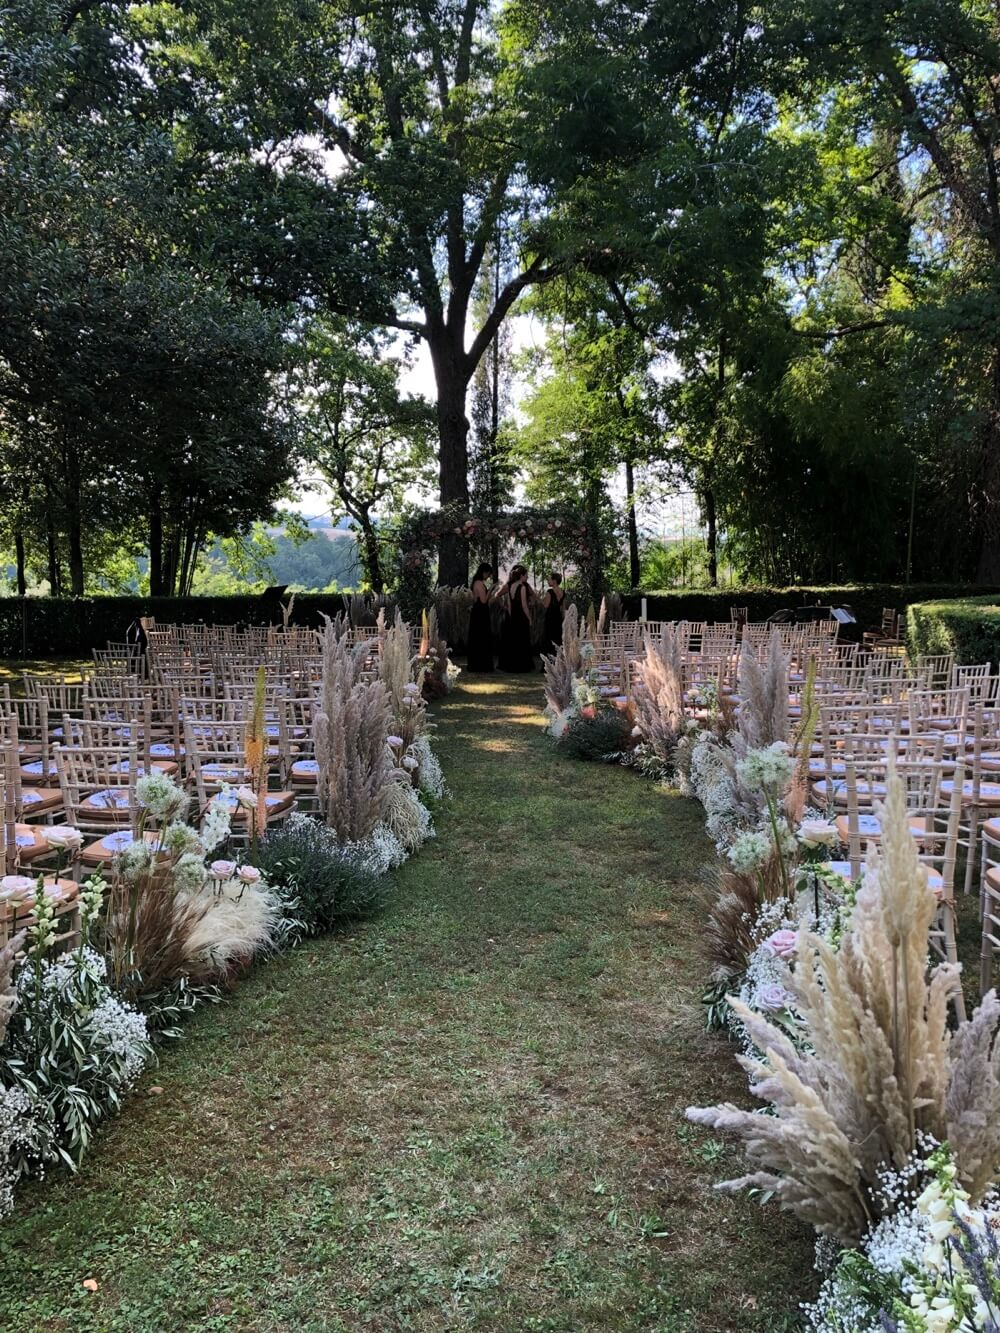 Destination Wedding Design and Planning in Tuscany, Florence, Siena, Chianti, Val d'Orcia. Olivia Sodi, Professional Wedding Planner & Designer in Tuscany and Italy